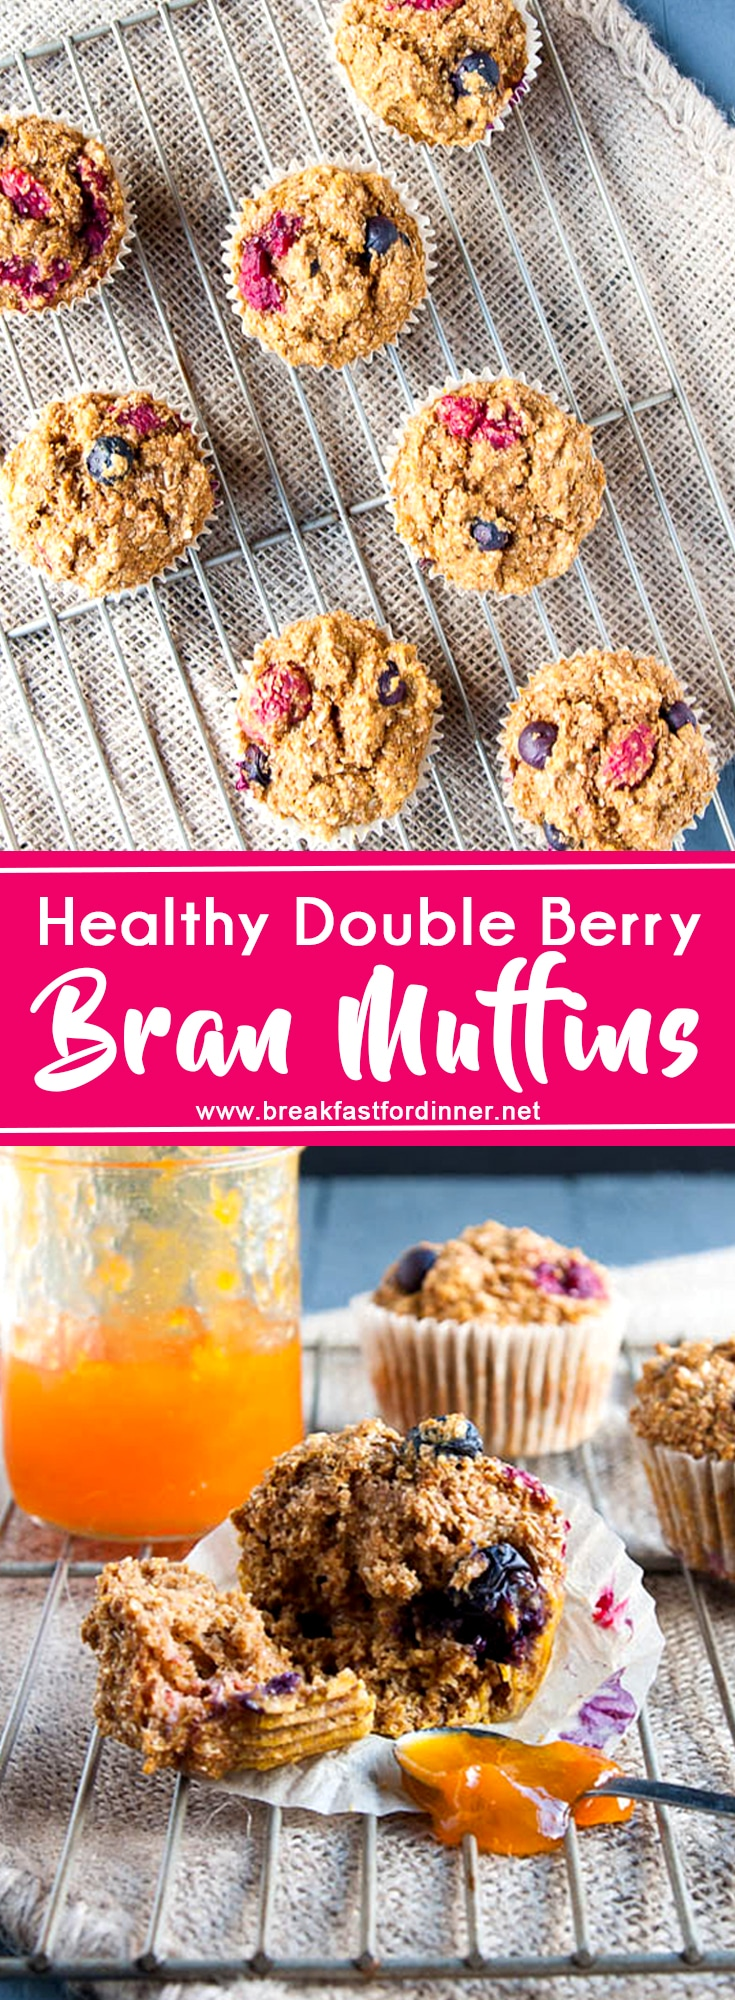 Double Berry Bran Muffins are high in fiber and low in fat - a healthy start to the new year!